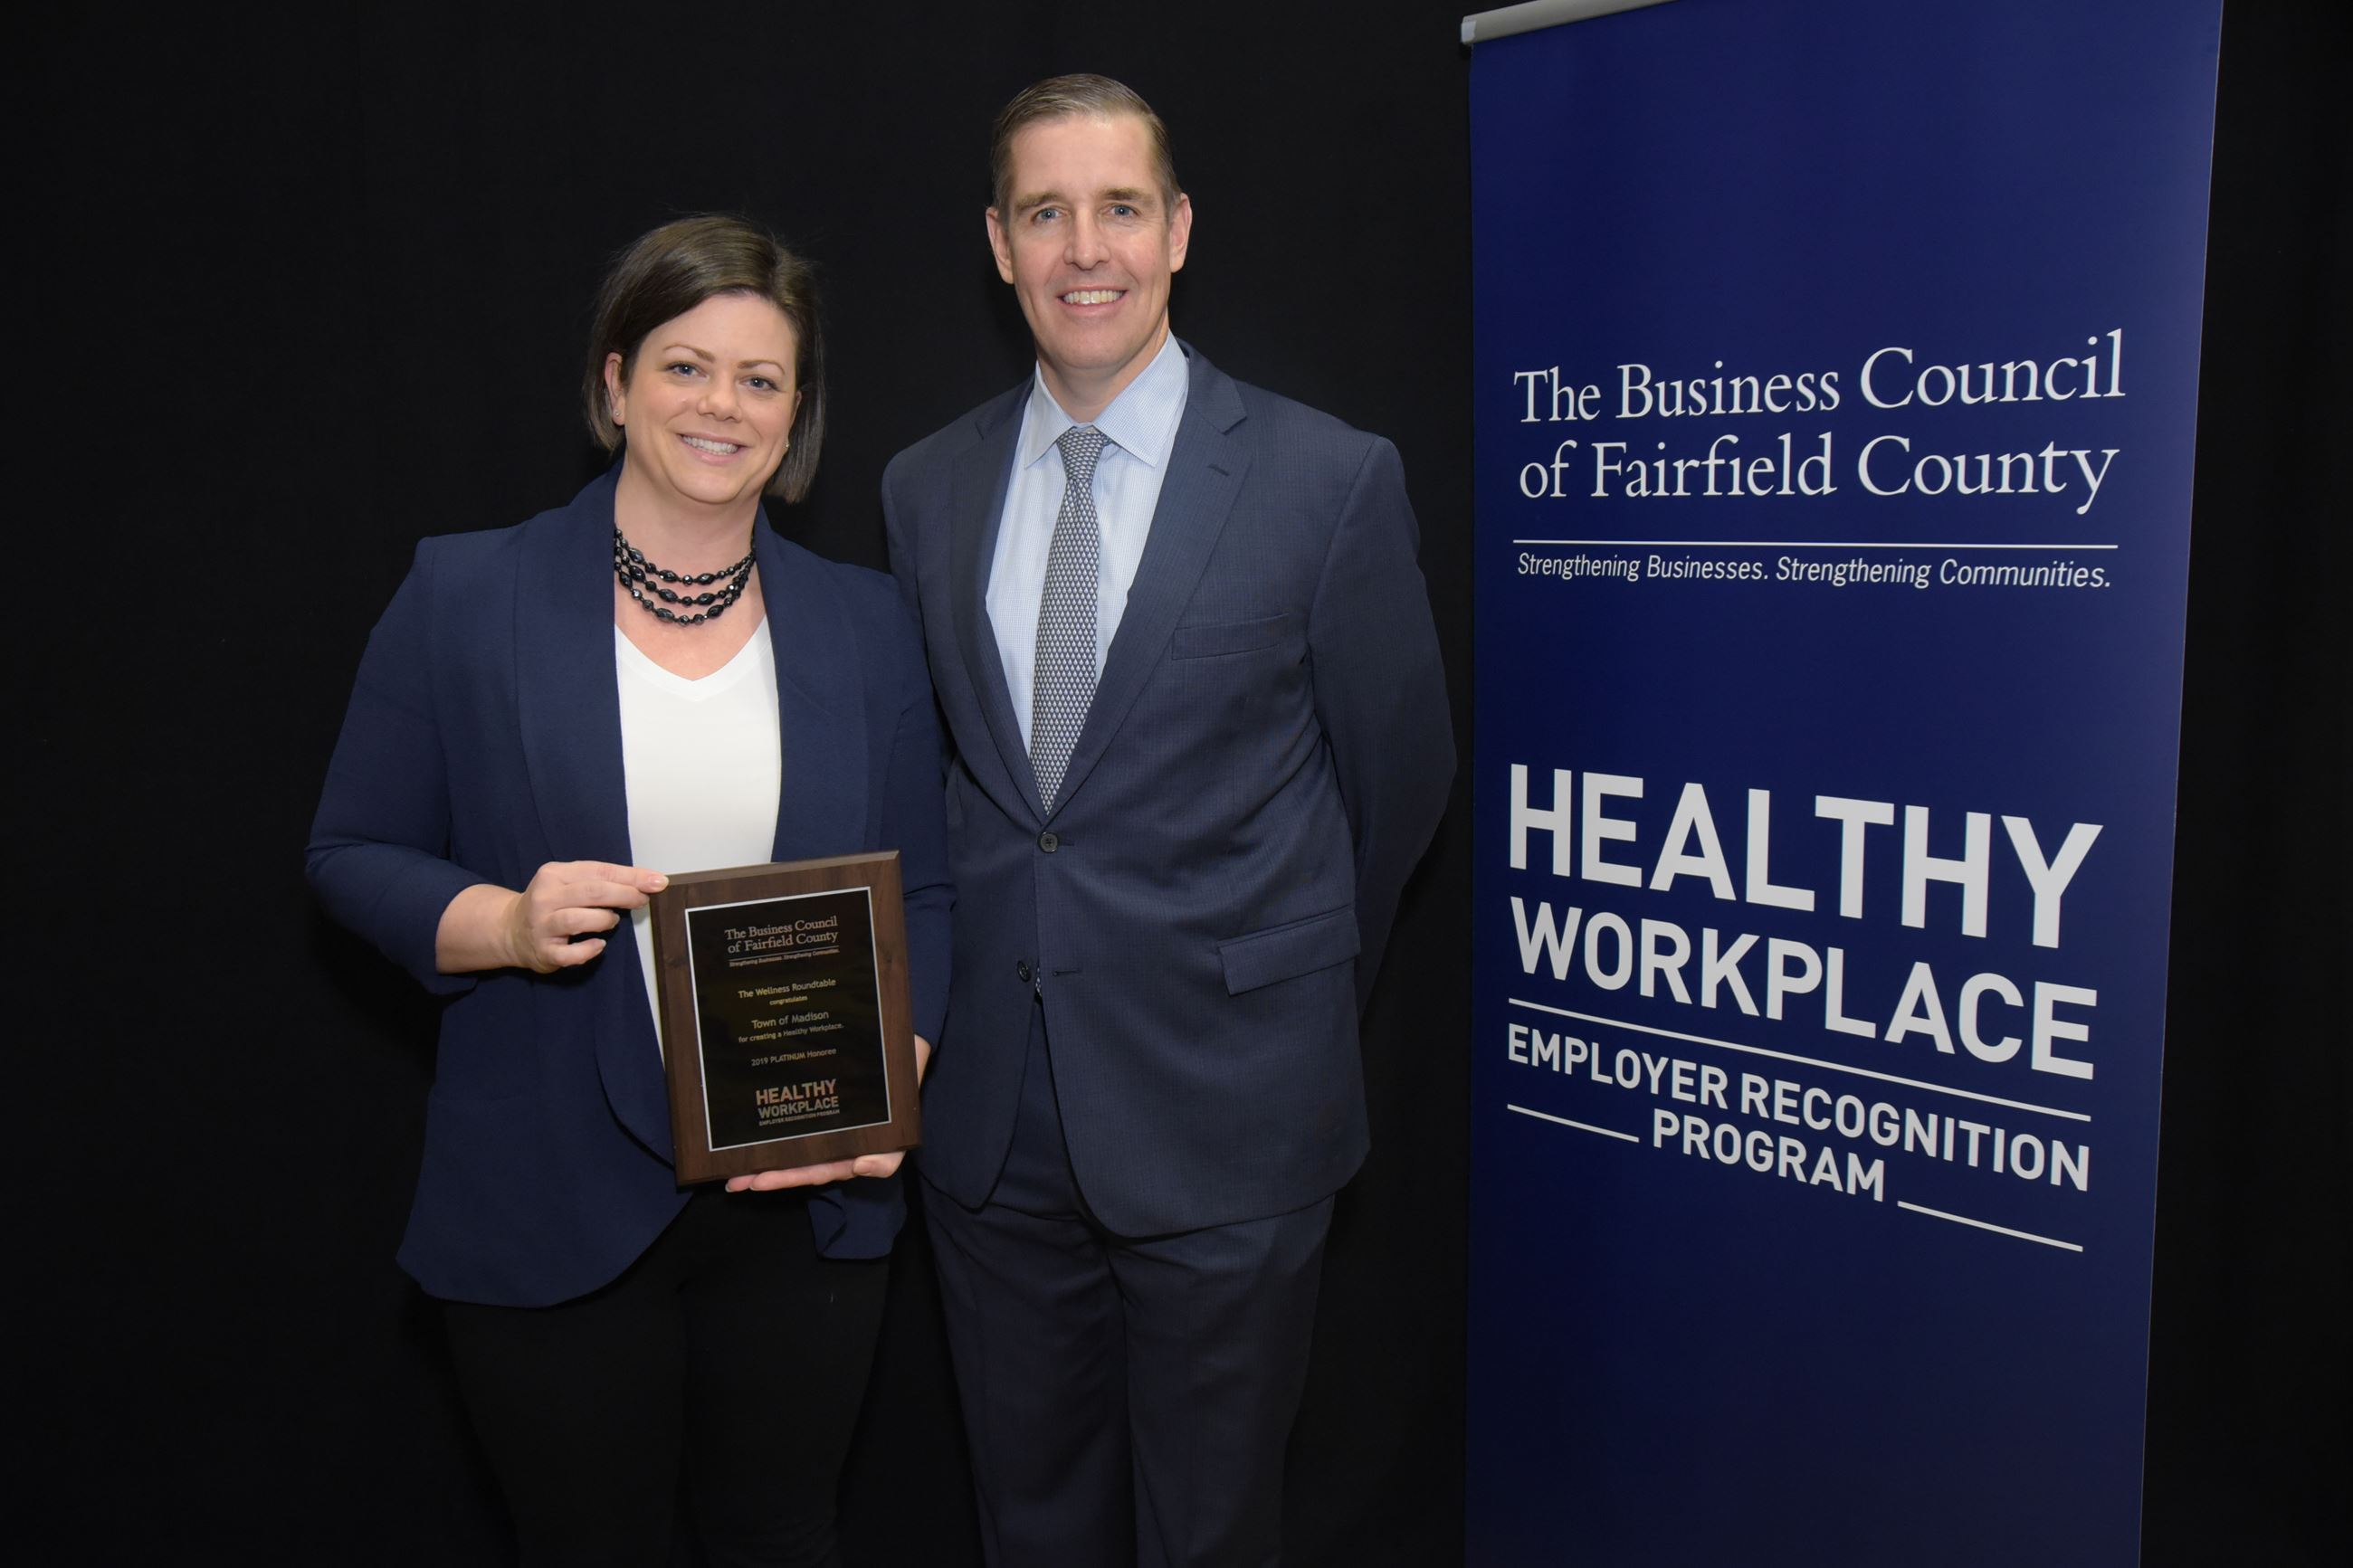 Town of Madison  Health  Wellness Award - Paula Carabetta